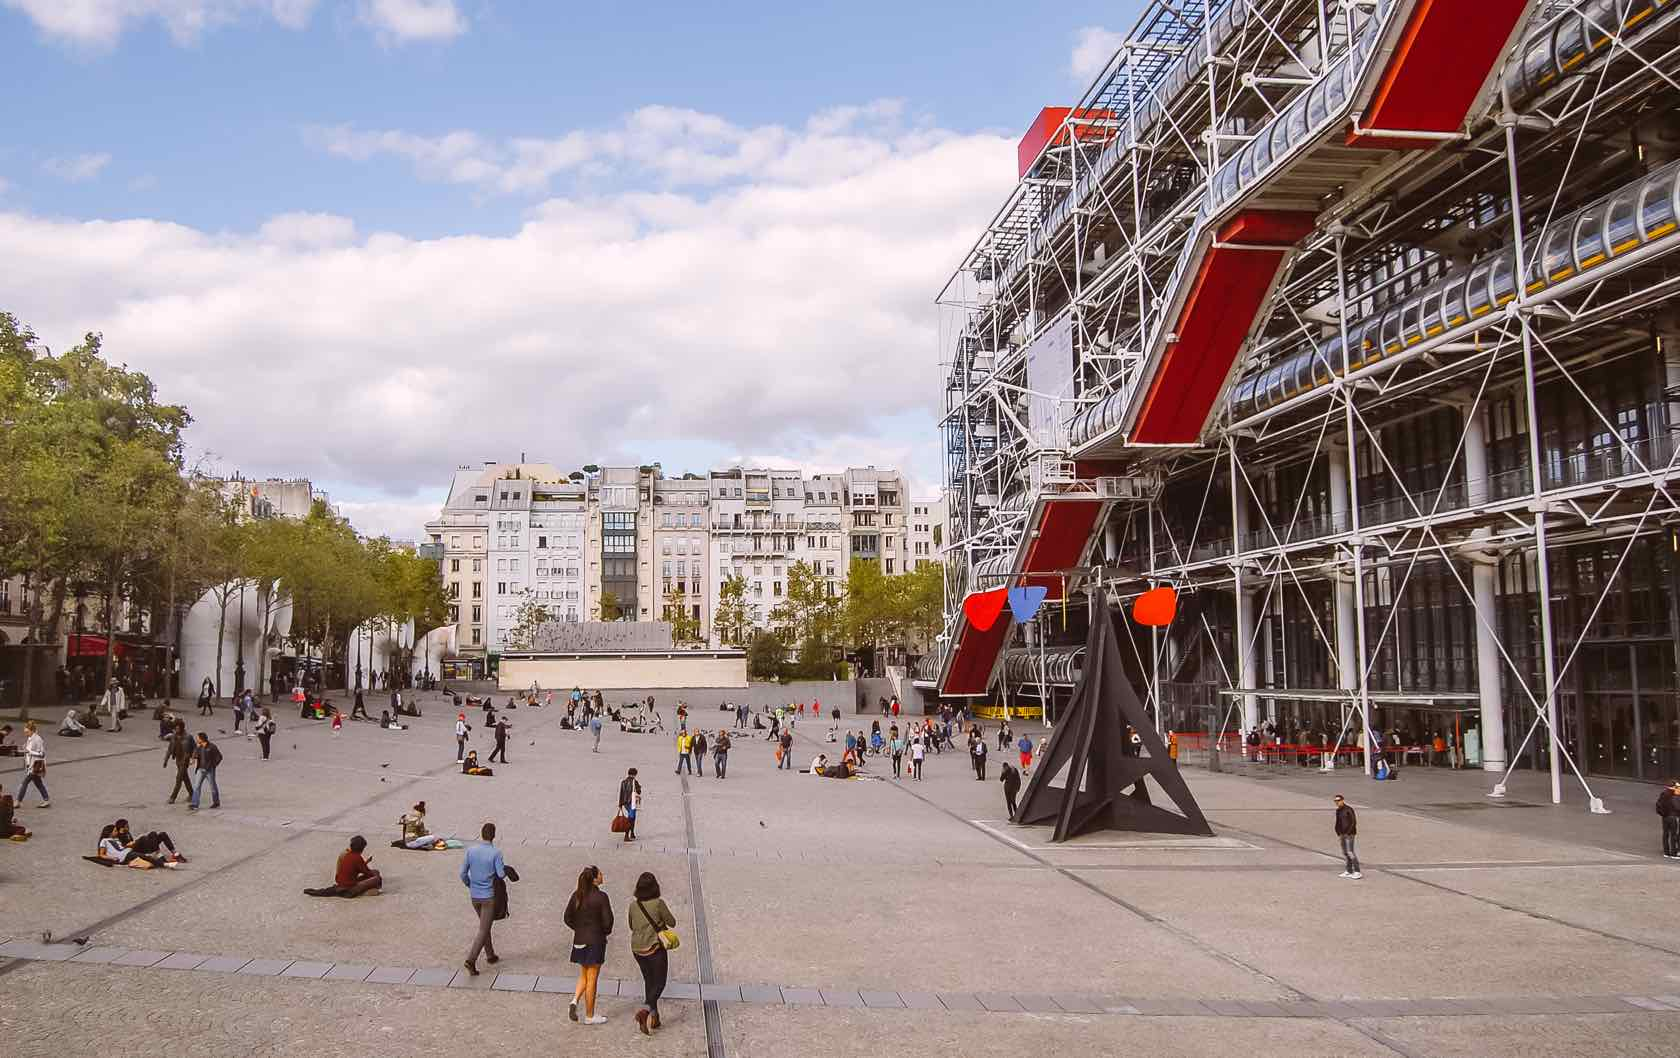 Pompidou Center Paris Visit France in 2020